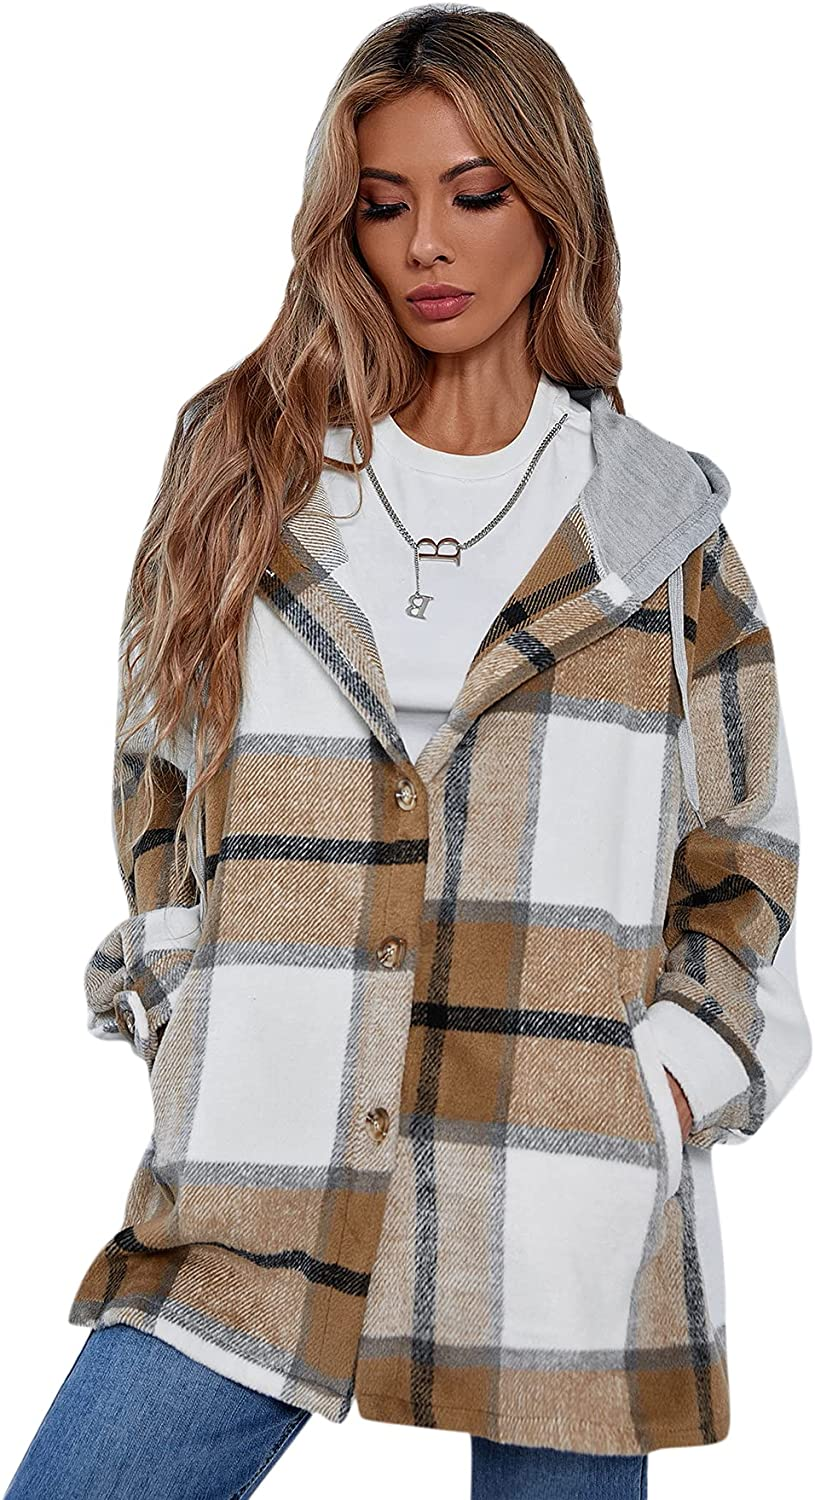 MakeMeChic Women's Plaid Long Sleeve Button Down Hooded Jackets Coat with Pockets